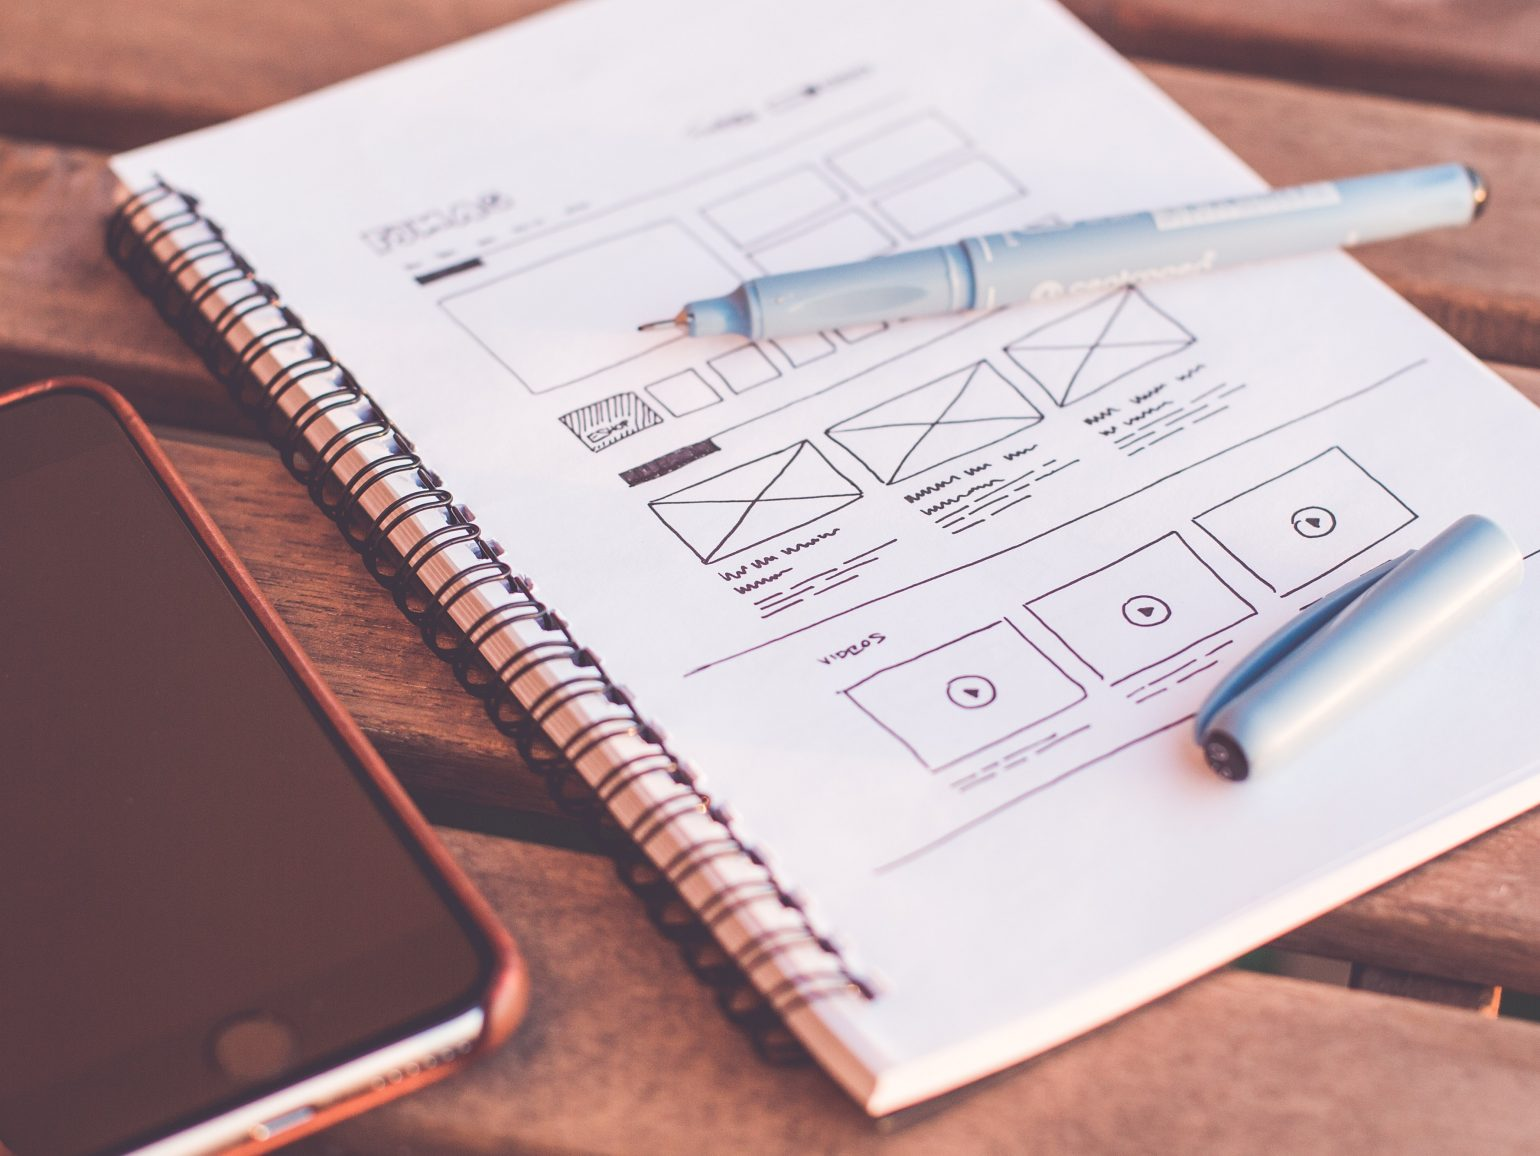 Why Wireframes are Important in the Web Design Process